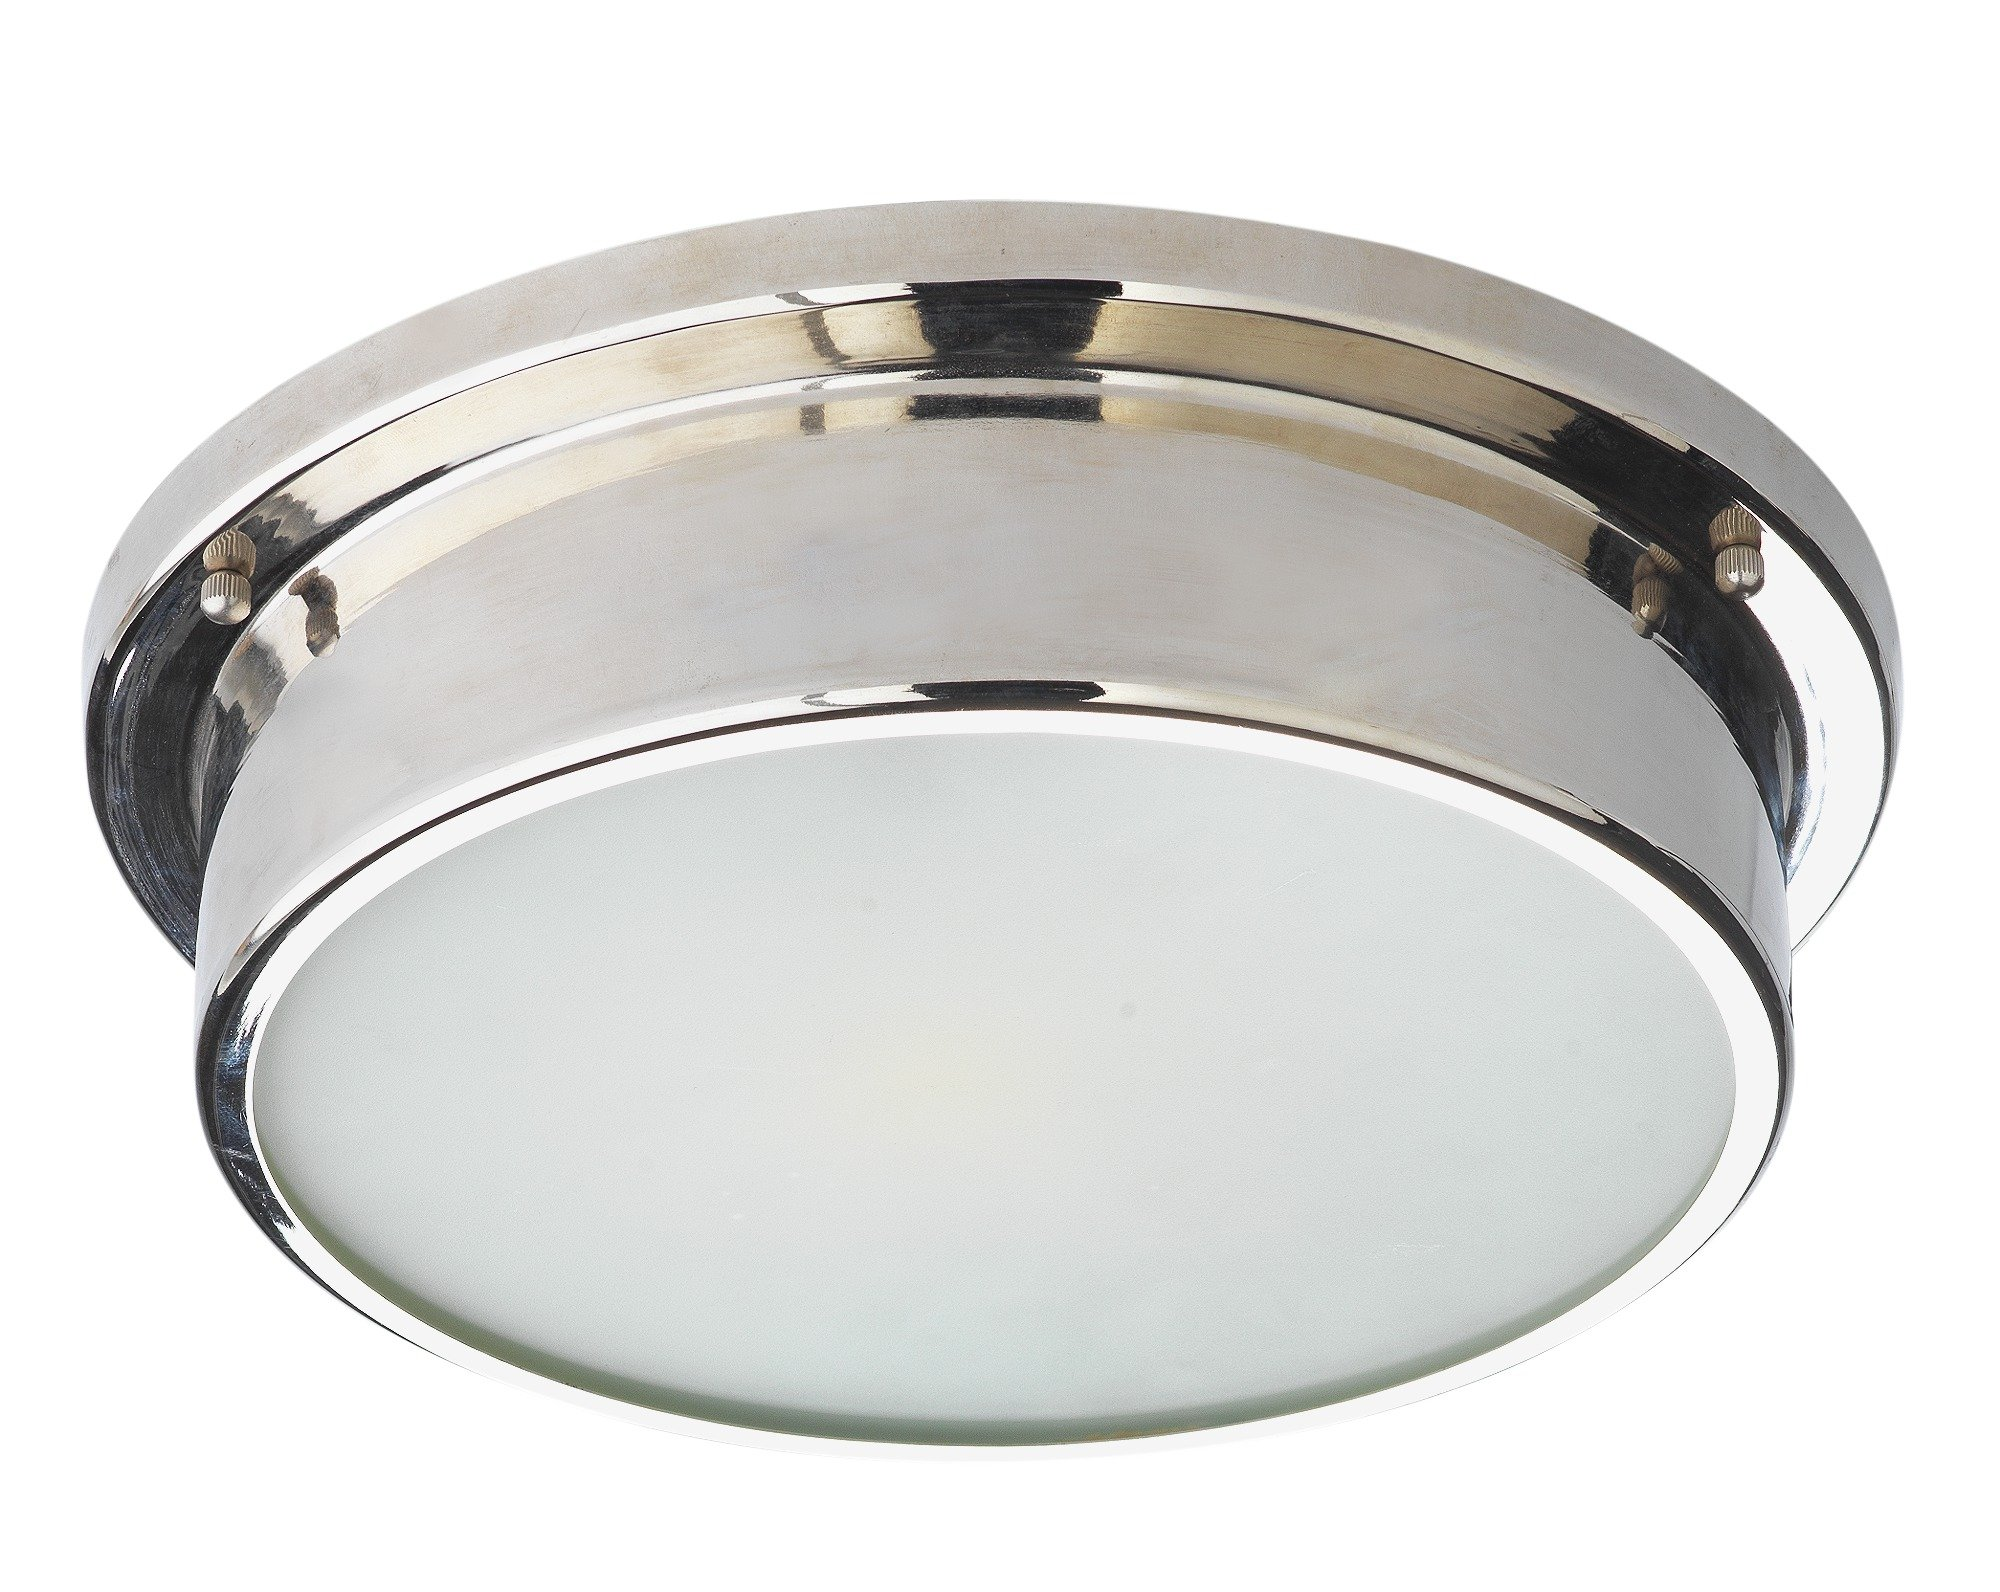 Bathroom Light Pulls Argos buy collection aviemore frosted glass bathroom light at argos.co